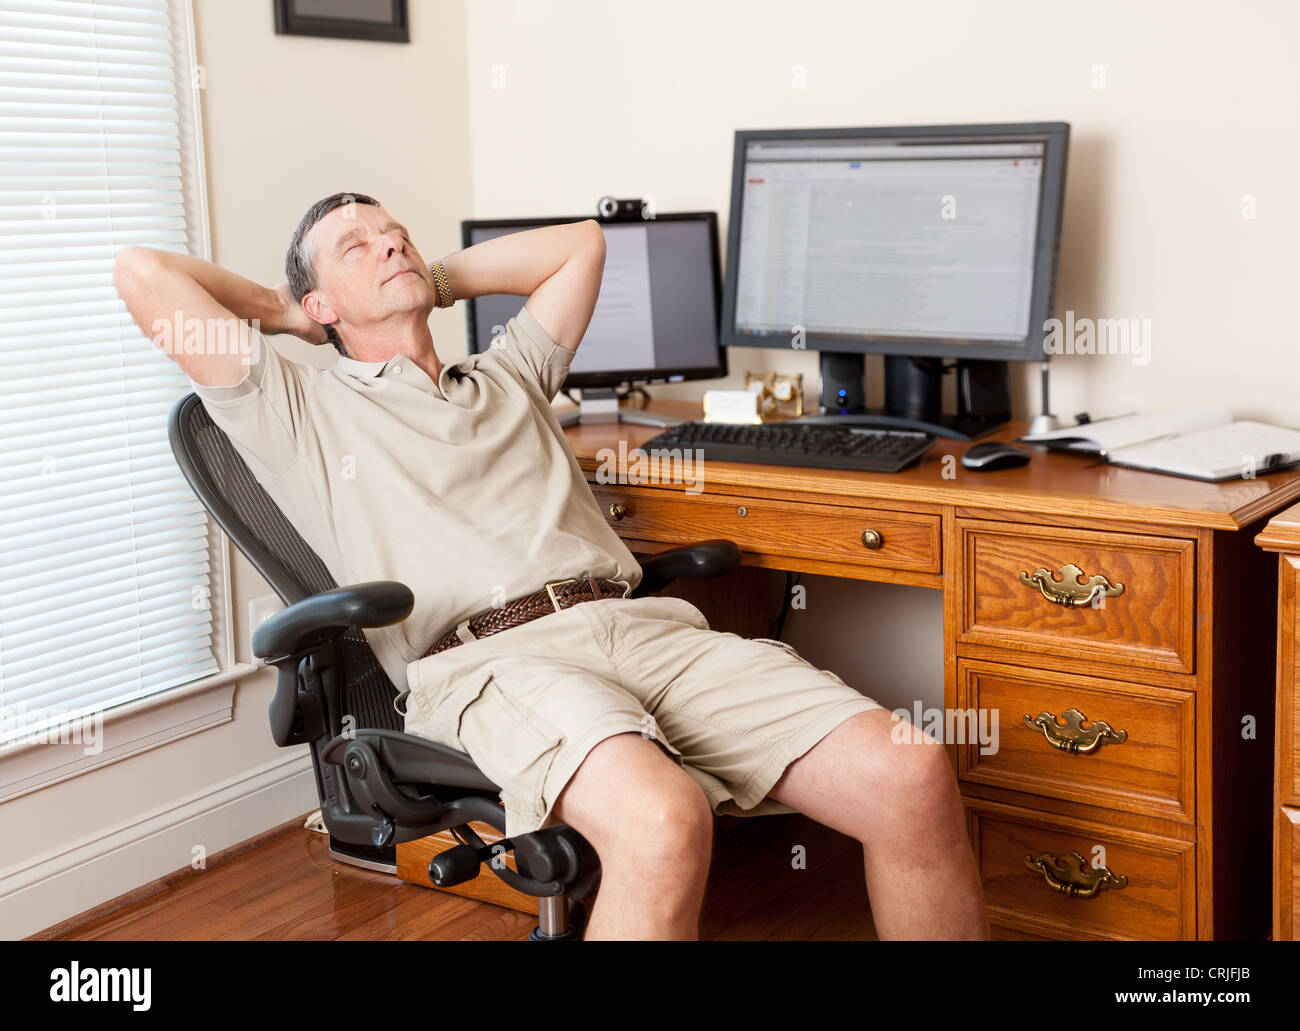 Man working from home office / thinking / slacking / sleeping / relaxing in shorts with desk with two monitors - Stock Image